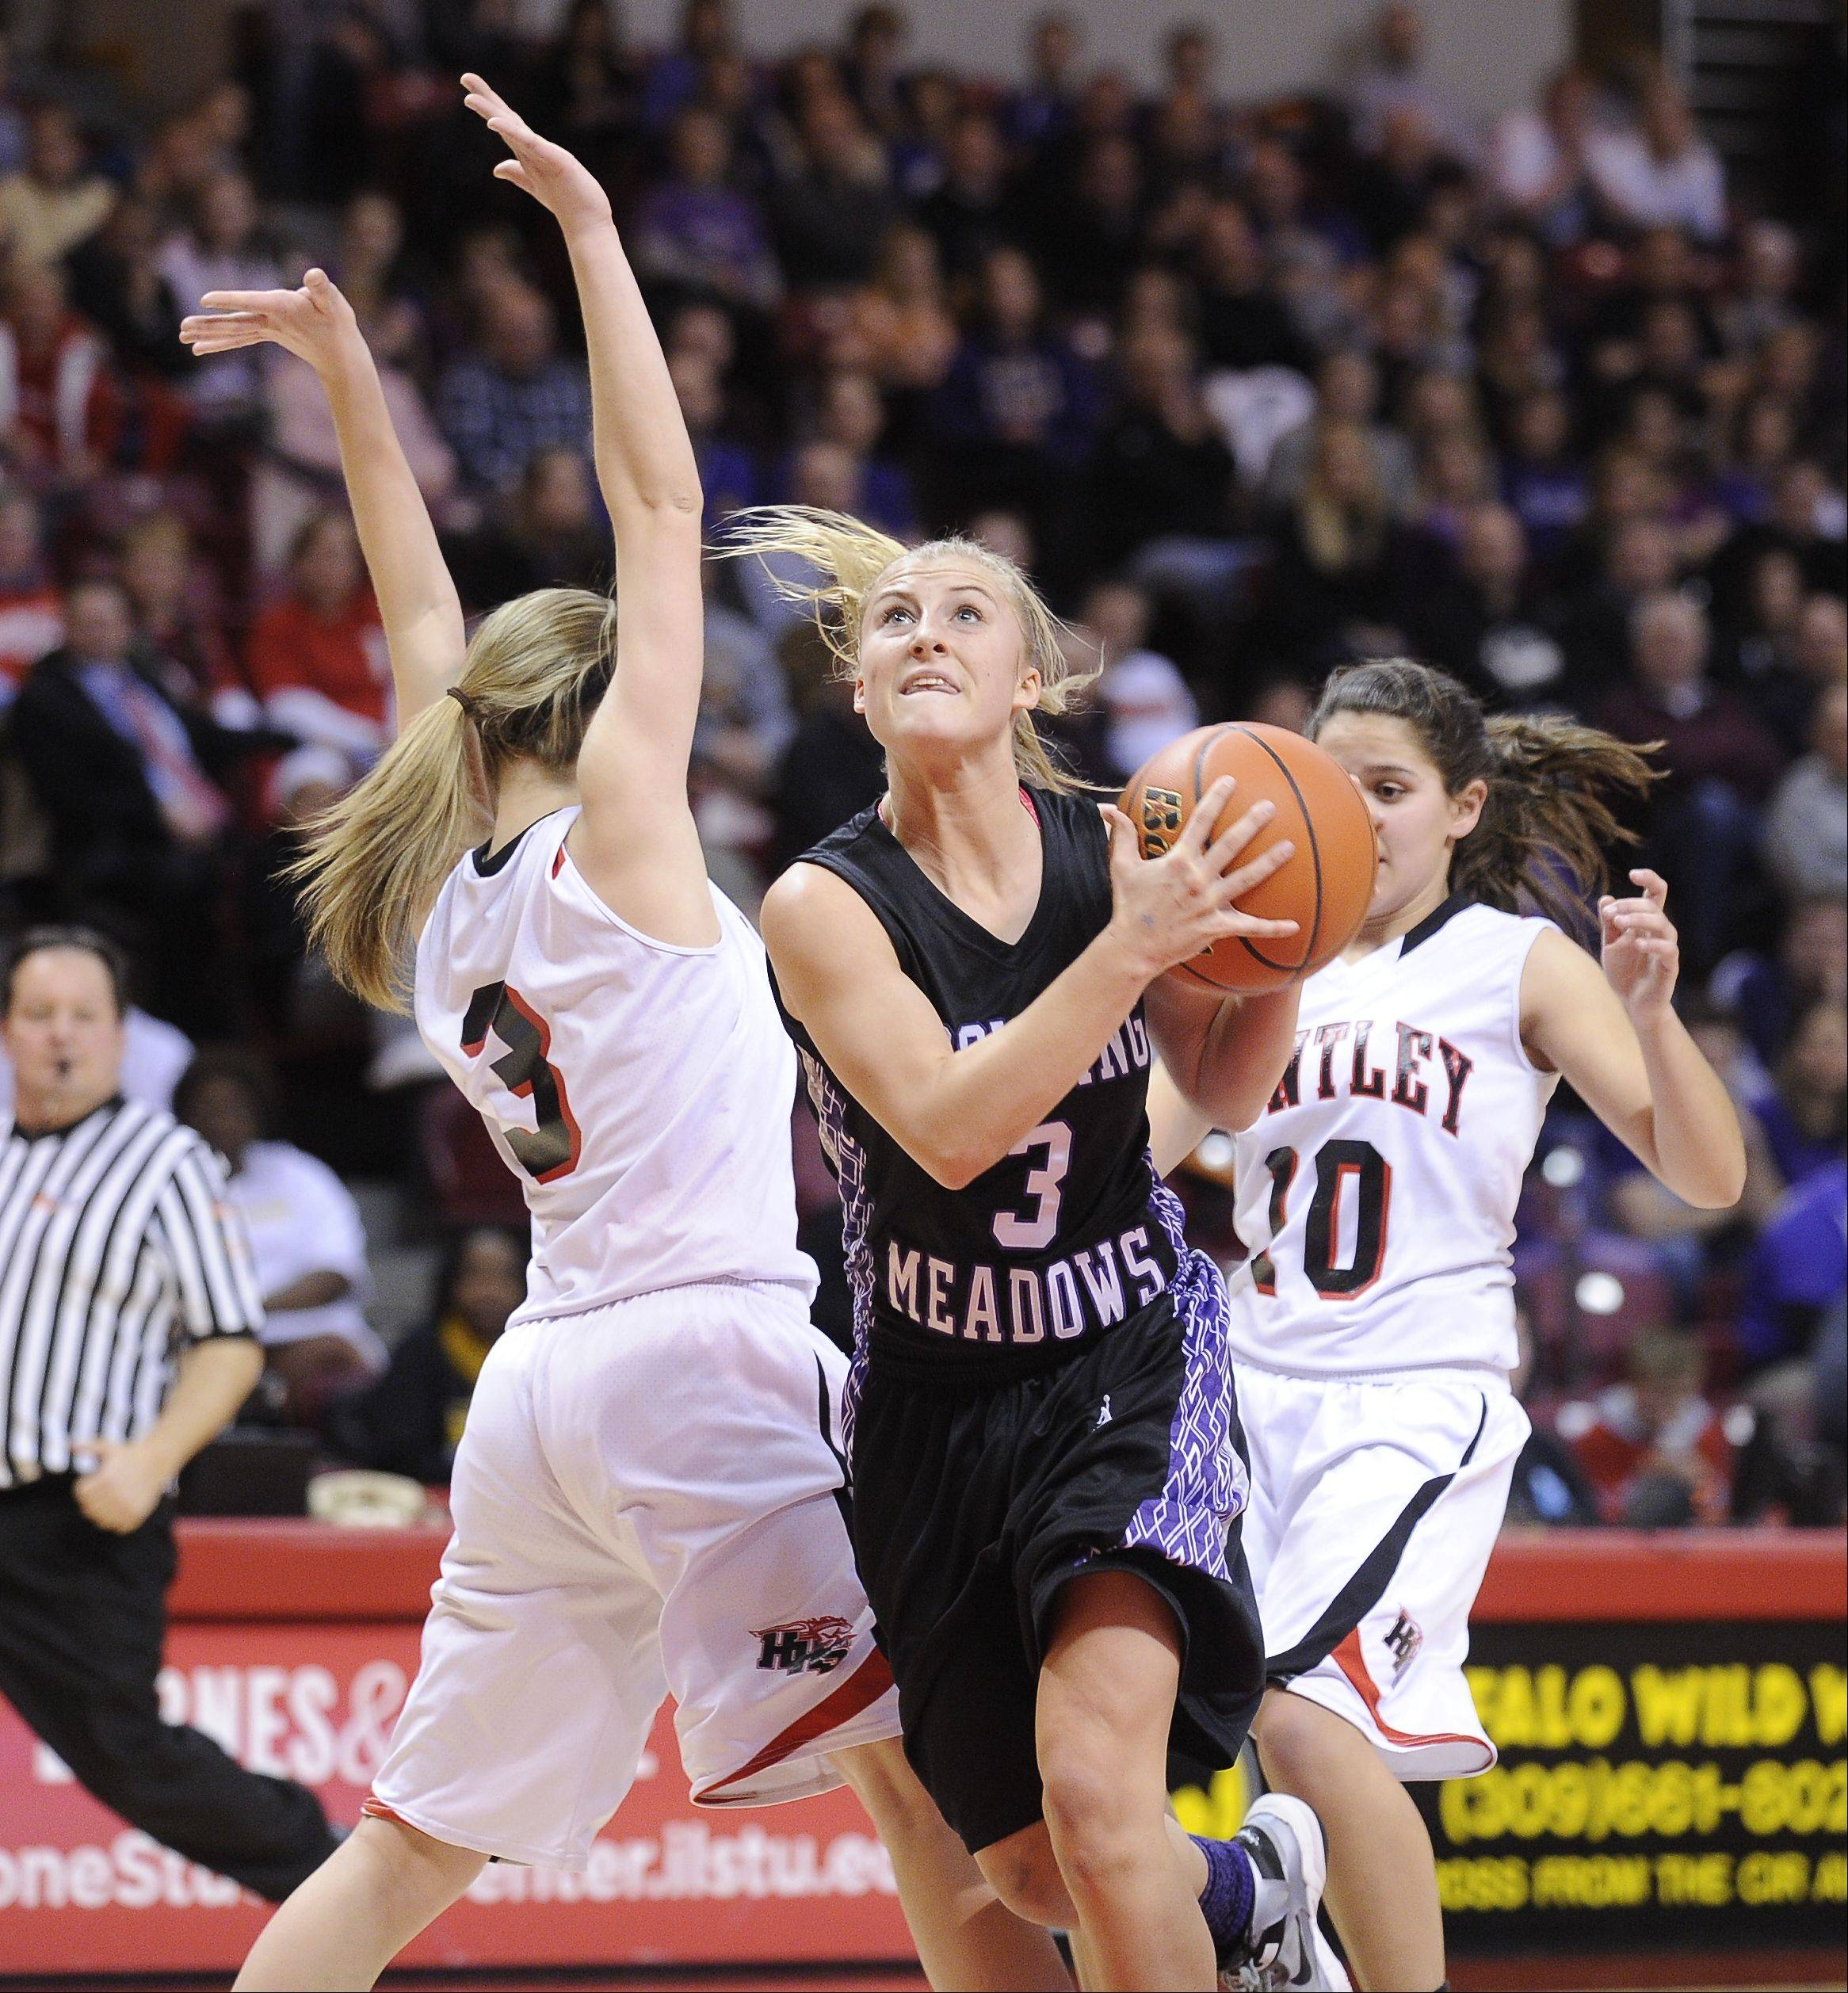 Images from the Huntley vs. Rolling Meadows IHSA Class 4A girls state basketball semifinal on Friday, Mar. 1 at Redbird Arena in Normal.